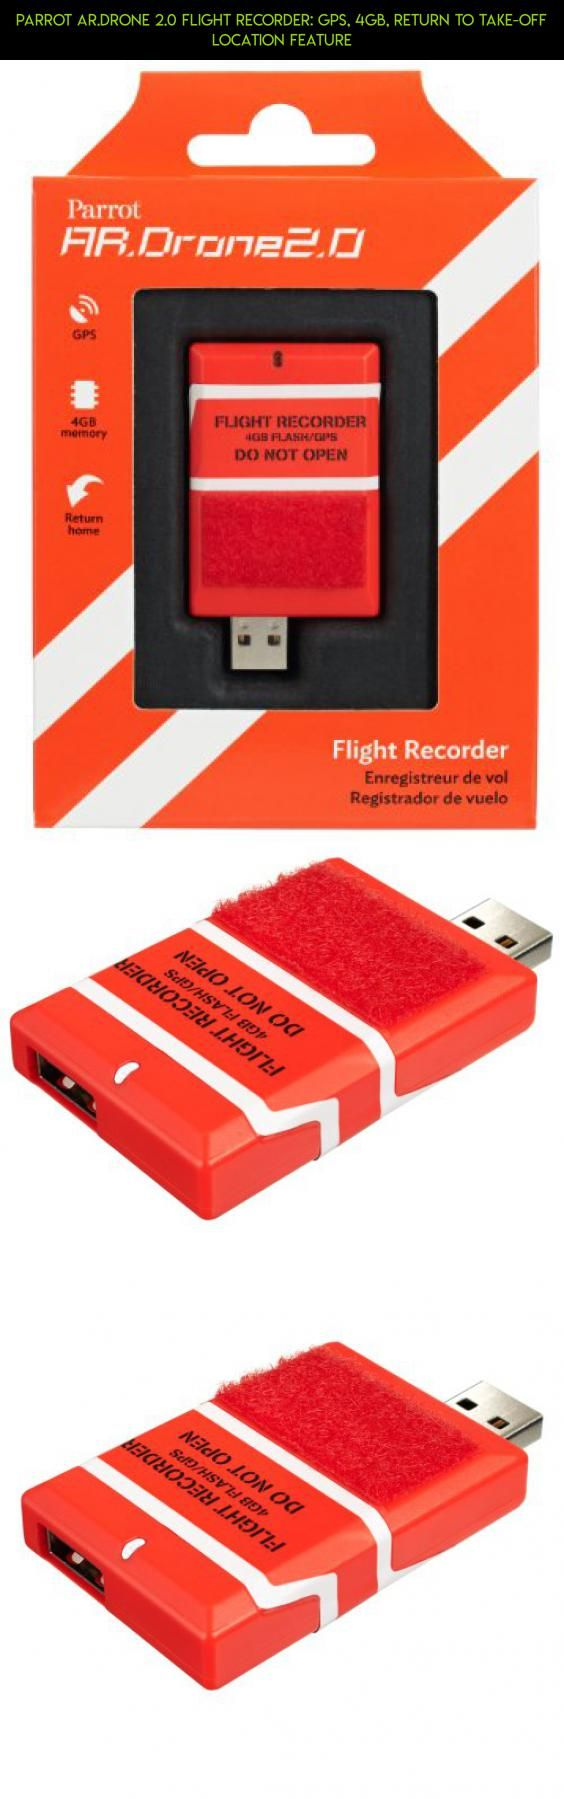 Parrot AR.DRONE 2.0 Flight Recorder: GPS, 4GB, return to take-off location feature #plans #drone #fpv #products #kit #gadgets #camera #parts #racing #4 #drone #tech #parrot #technology #shopping